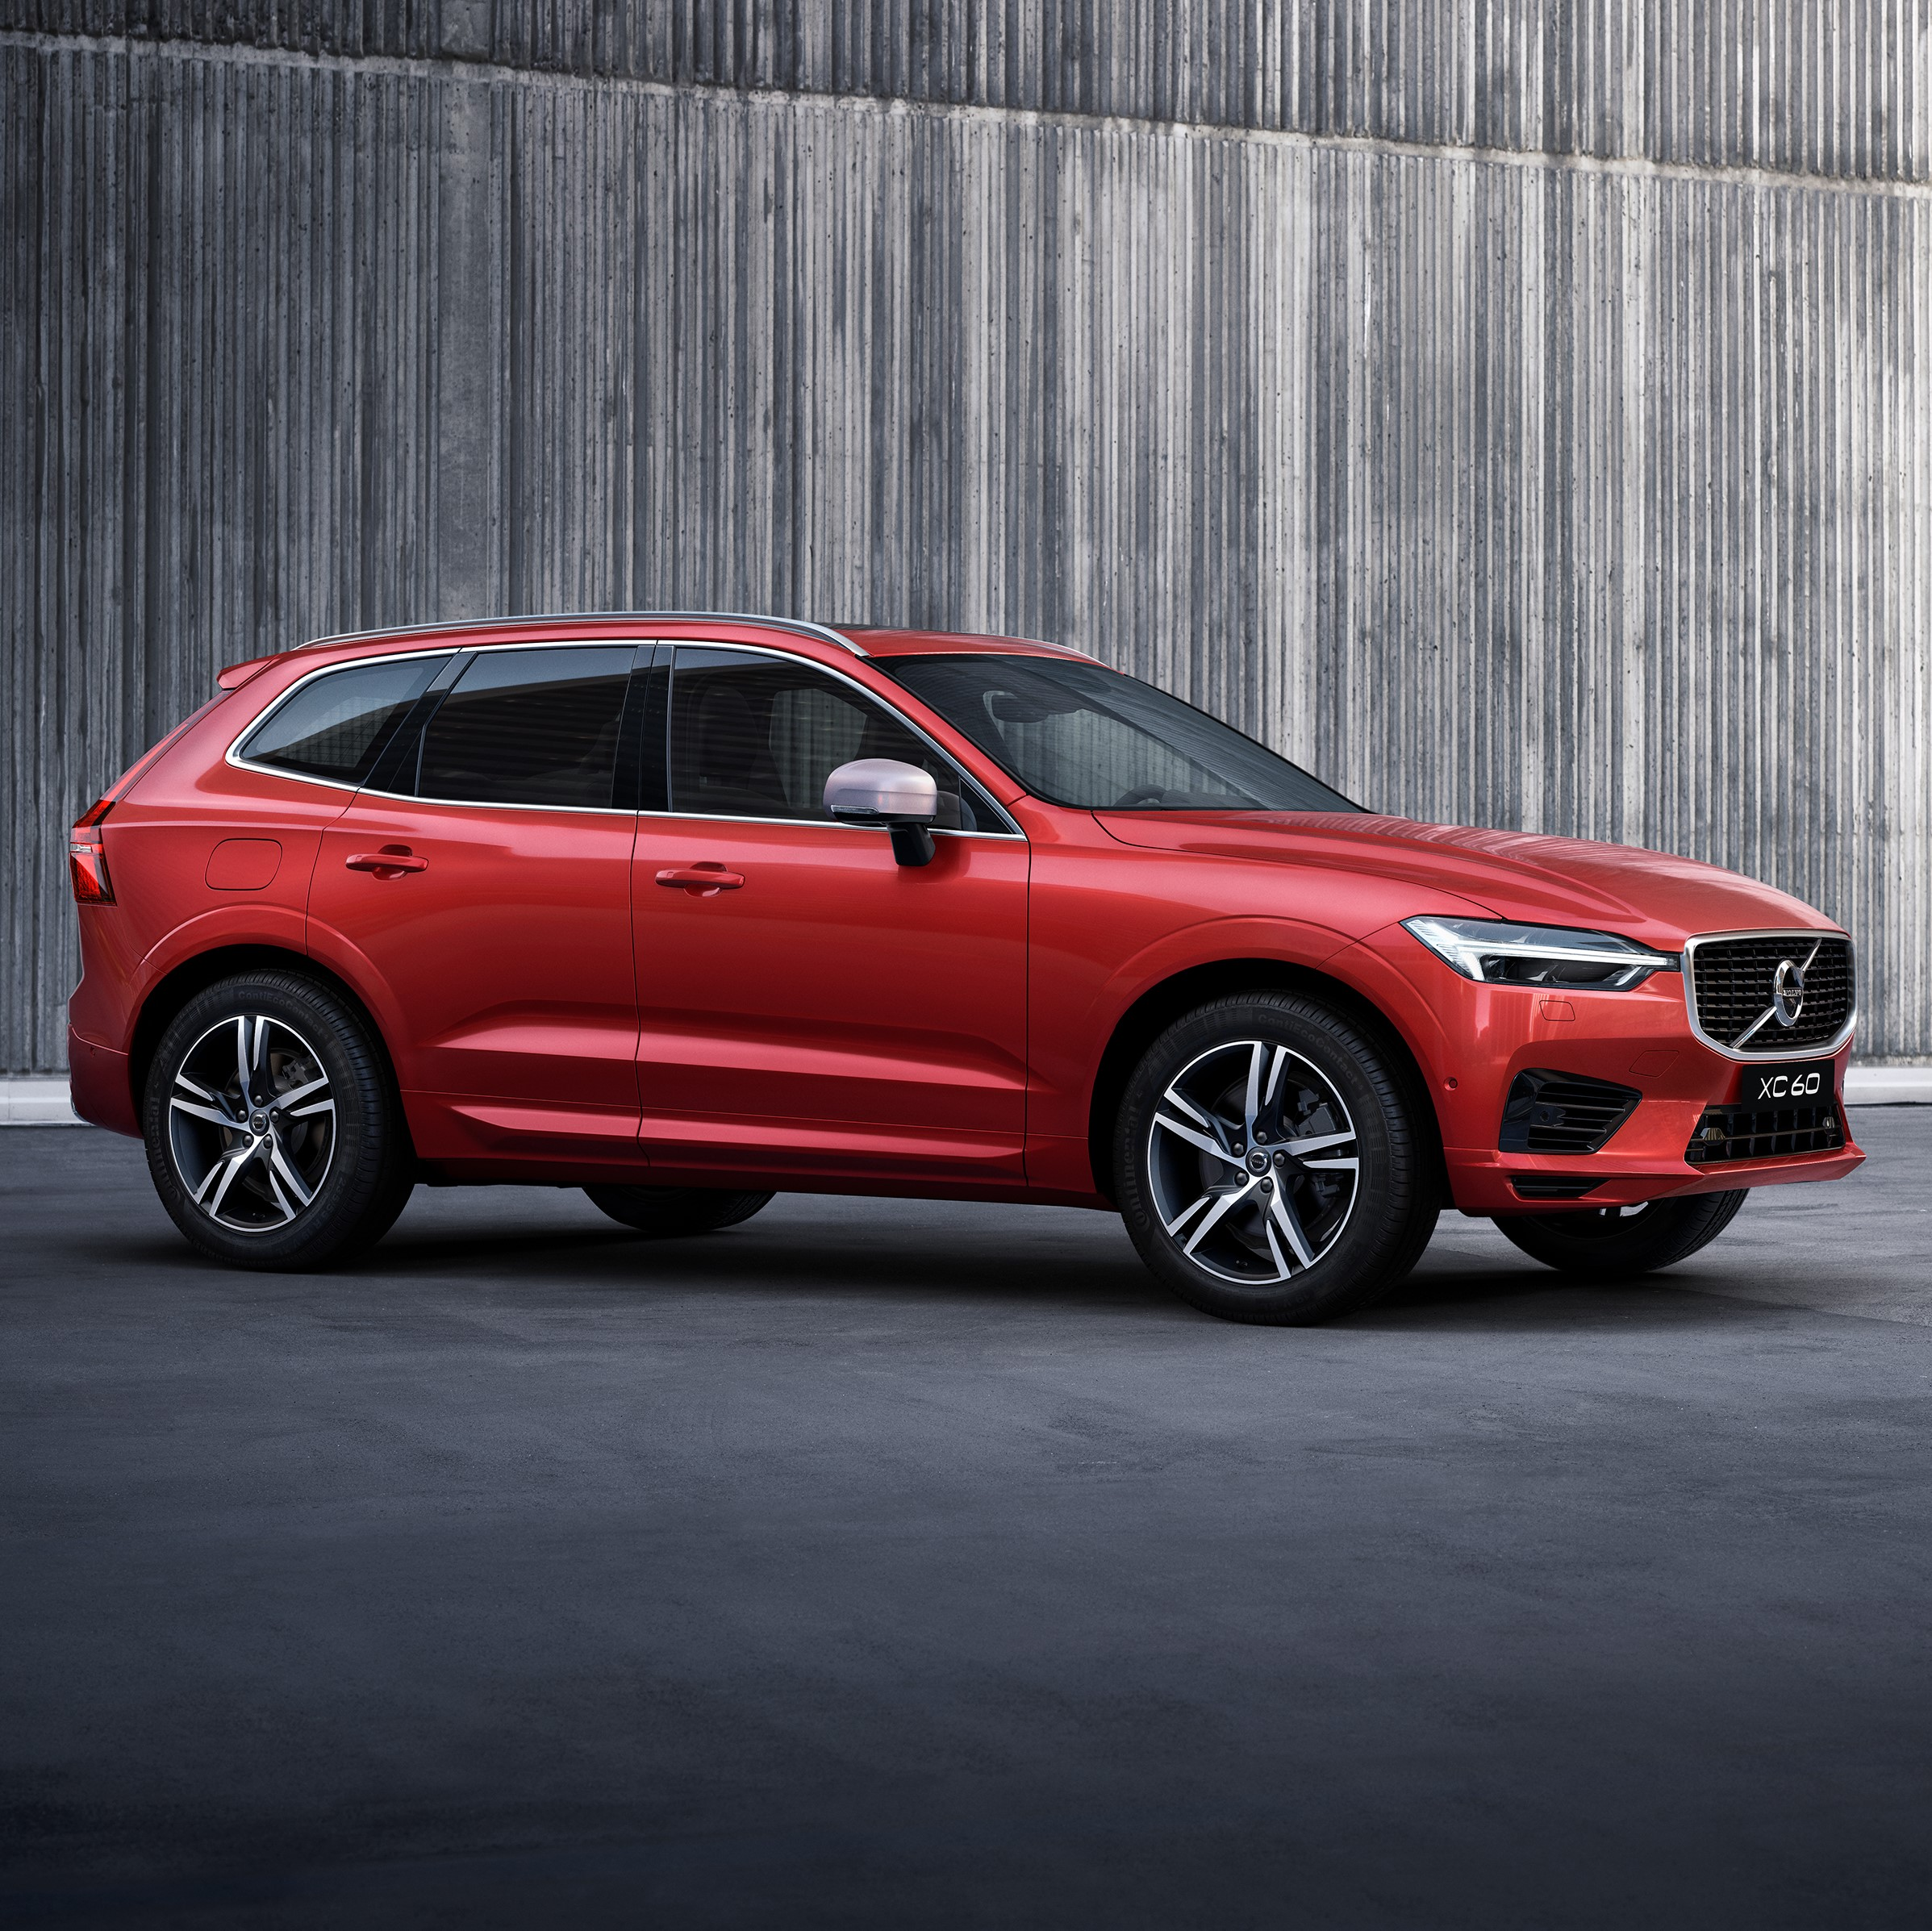 New Volvo XC60 For Sale At Volvo Cars Worcester